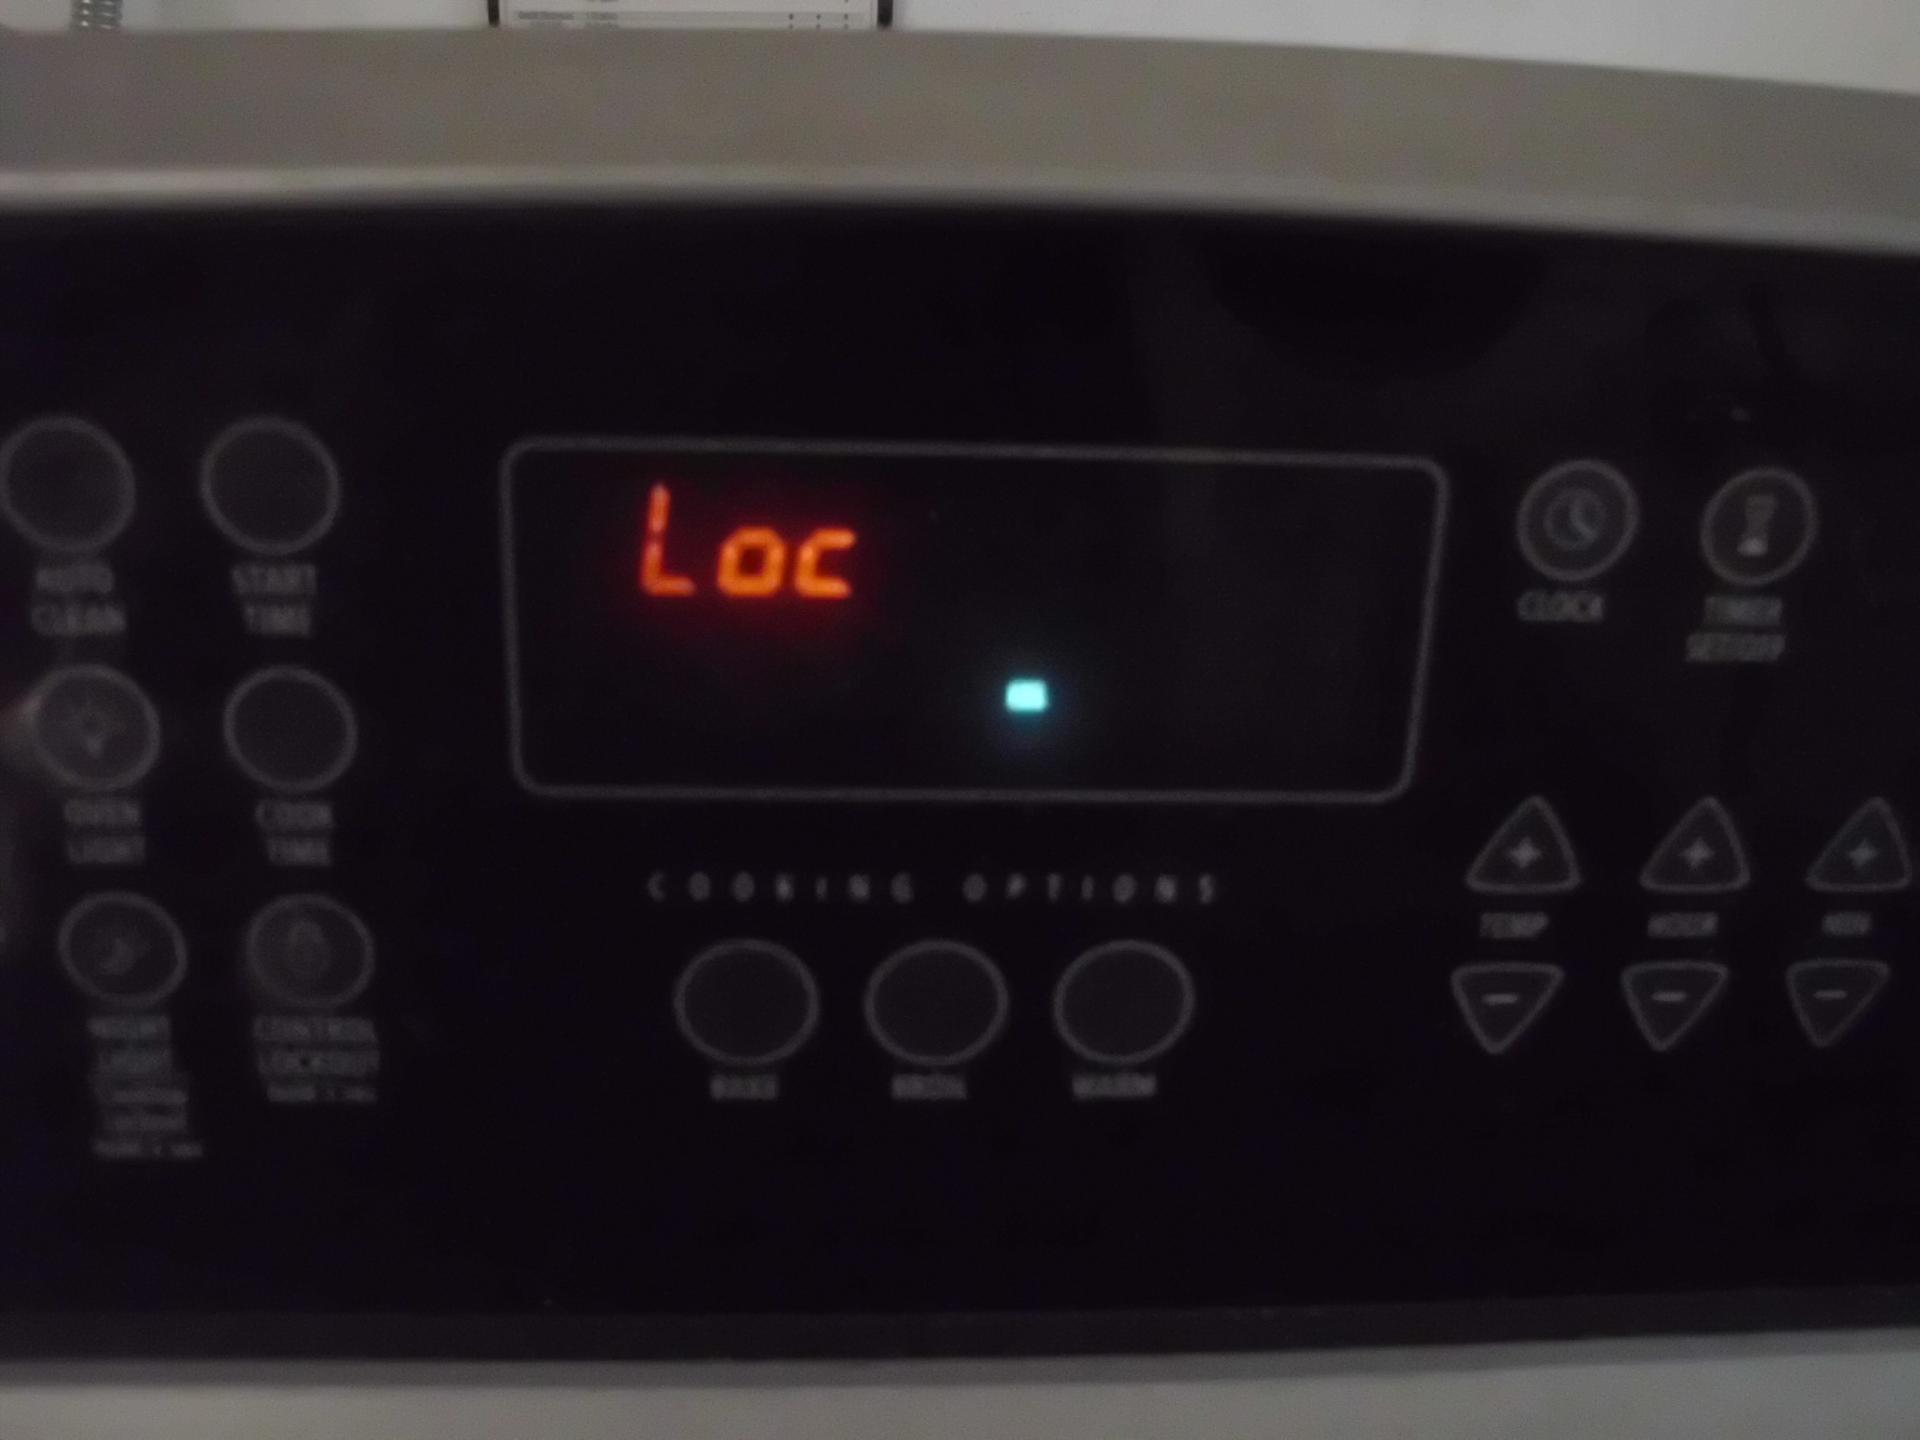 How to turn off whirlpool oven